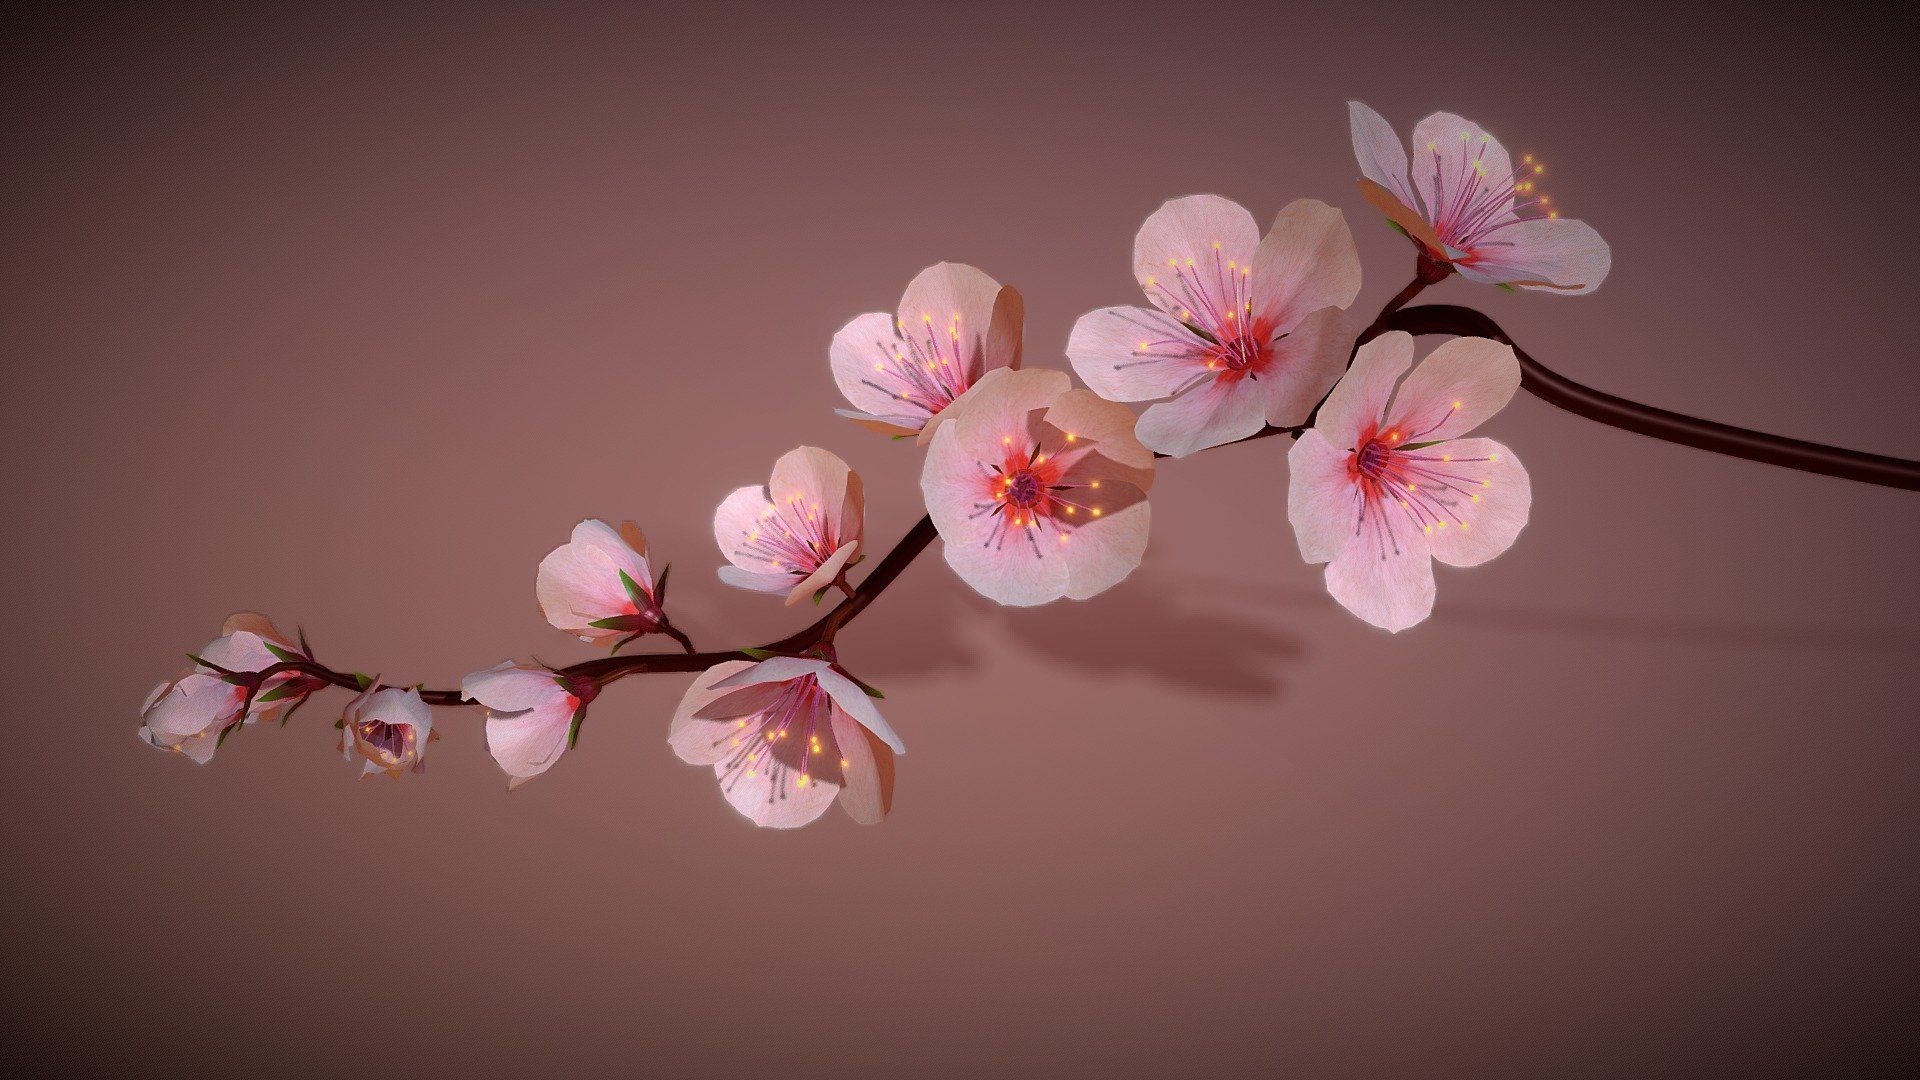 Cherry Blossoms Branch Rigged Animated By Pinotoon Cherry Blossom Branch Cherry Blossom Blossom